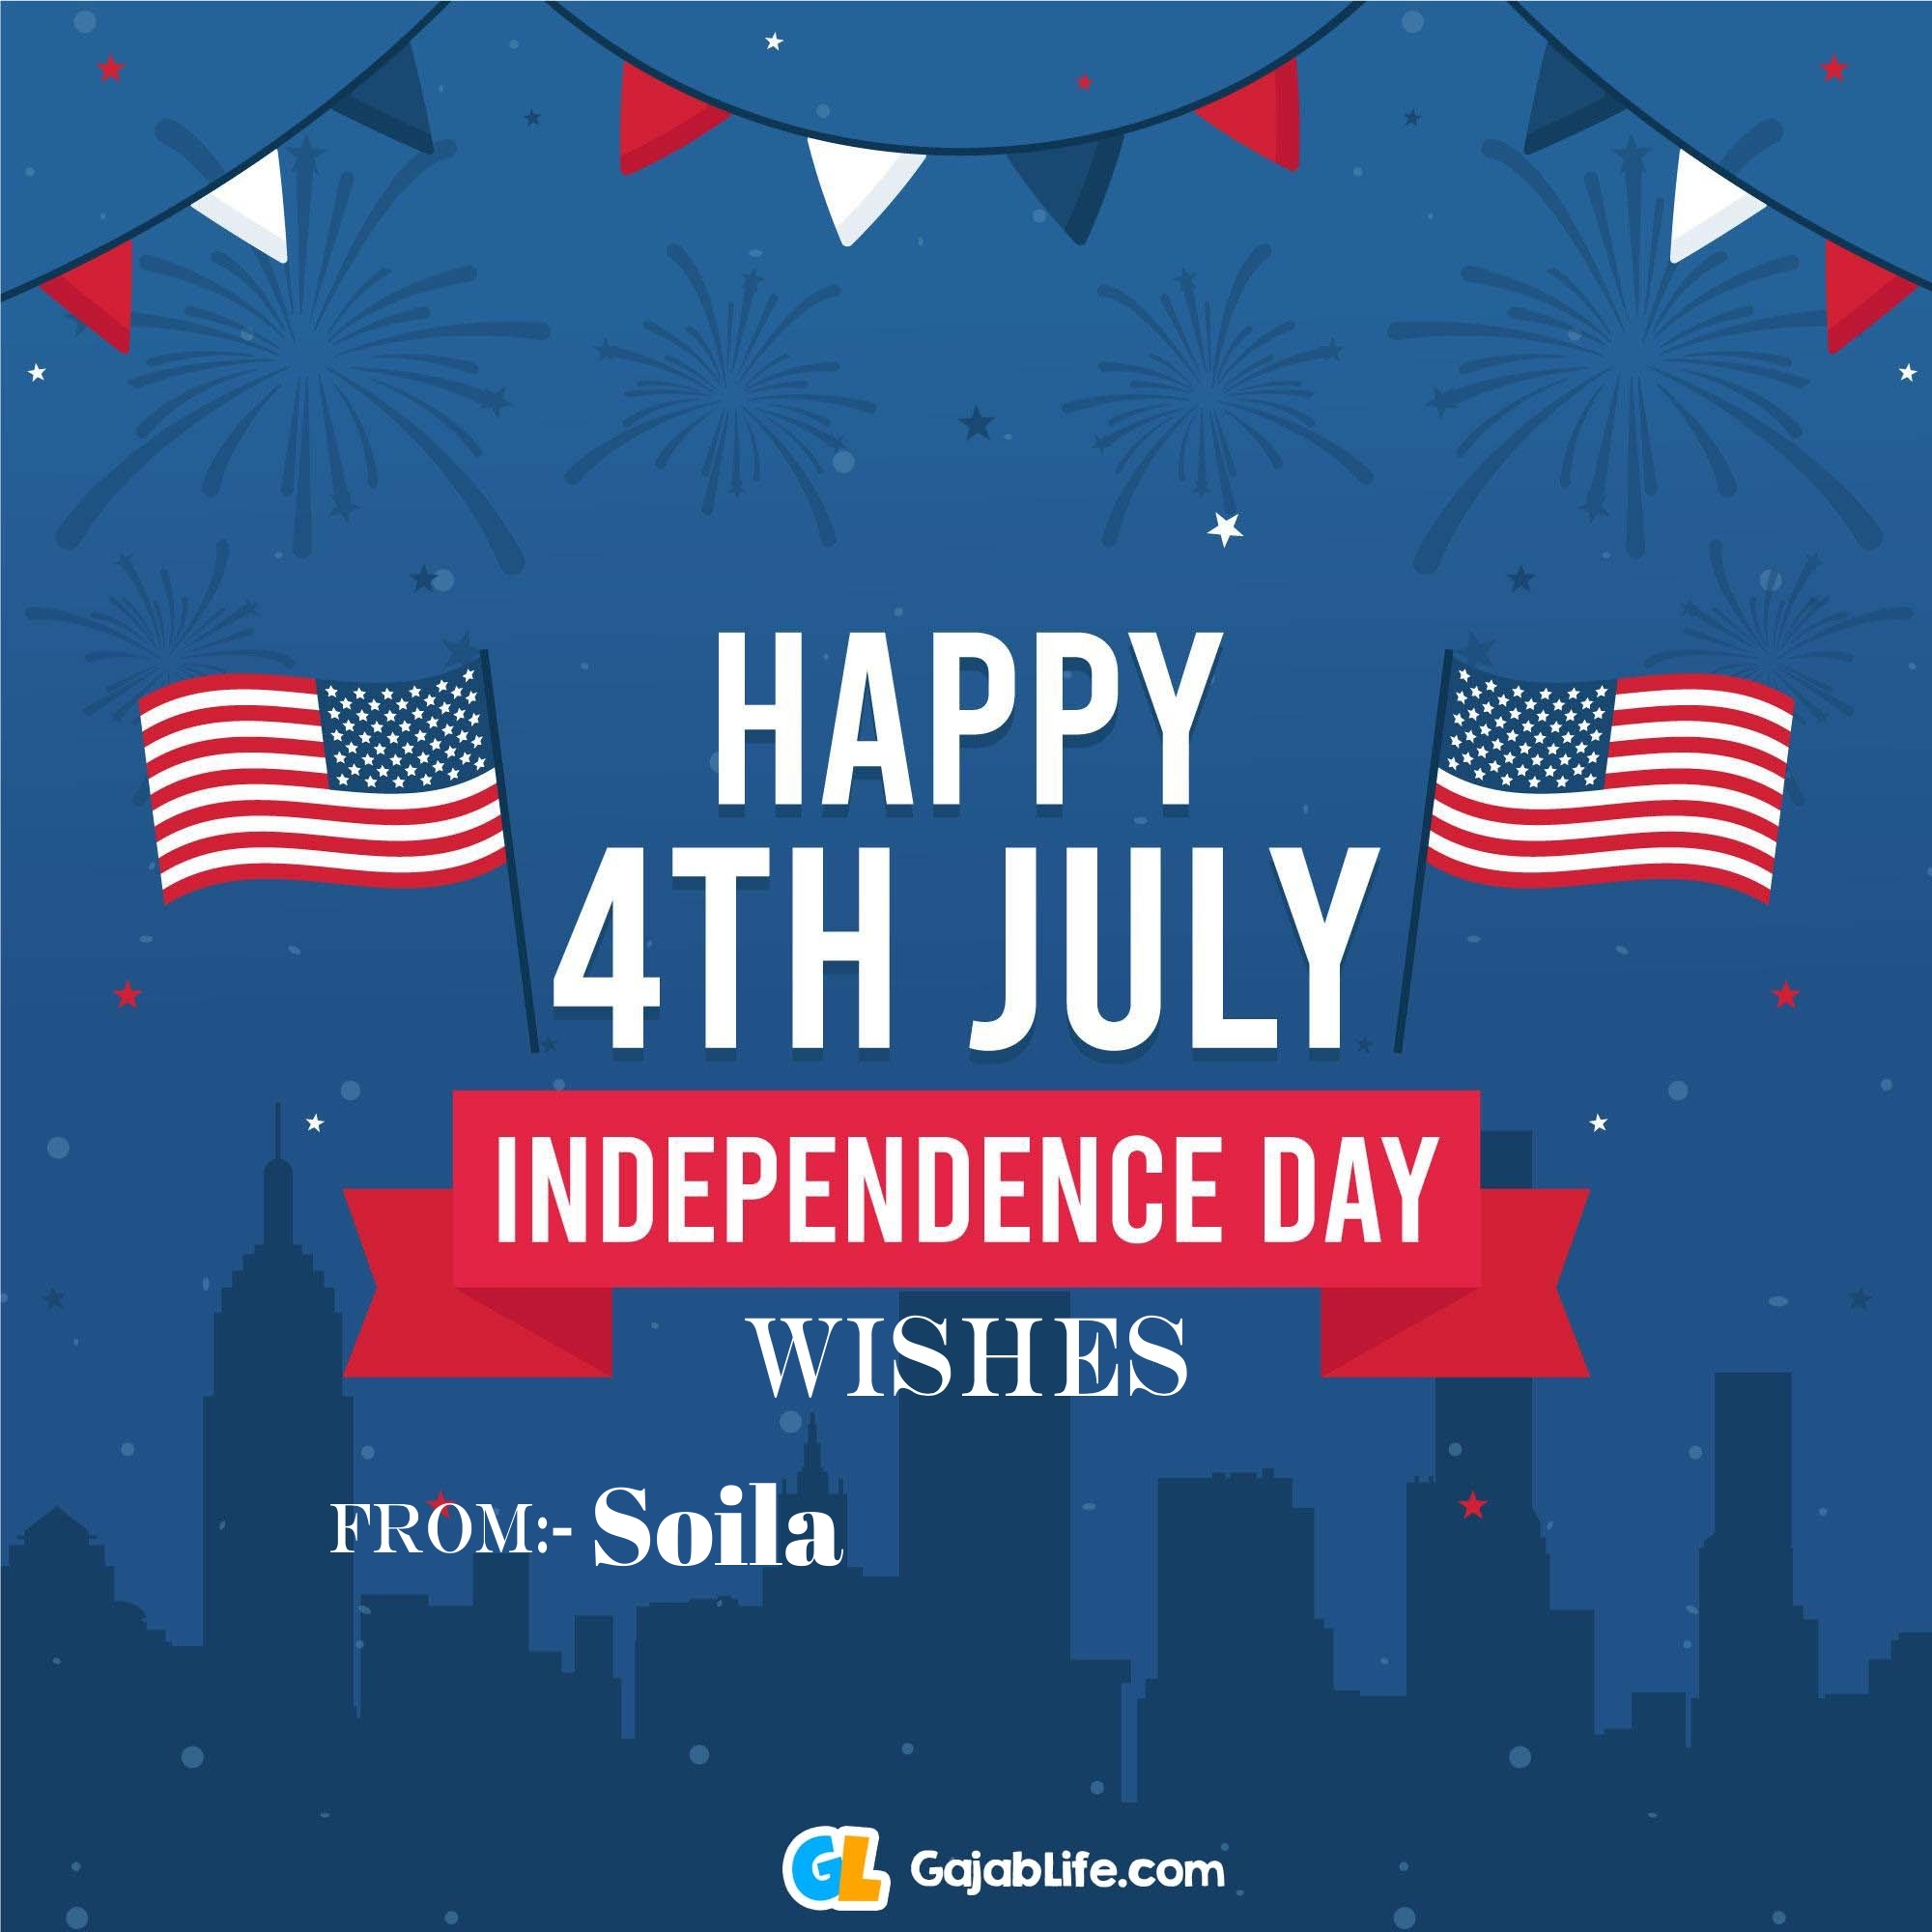 Soila happy independence day united states of america images